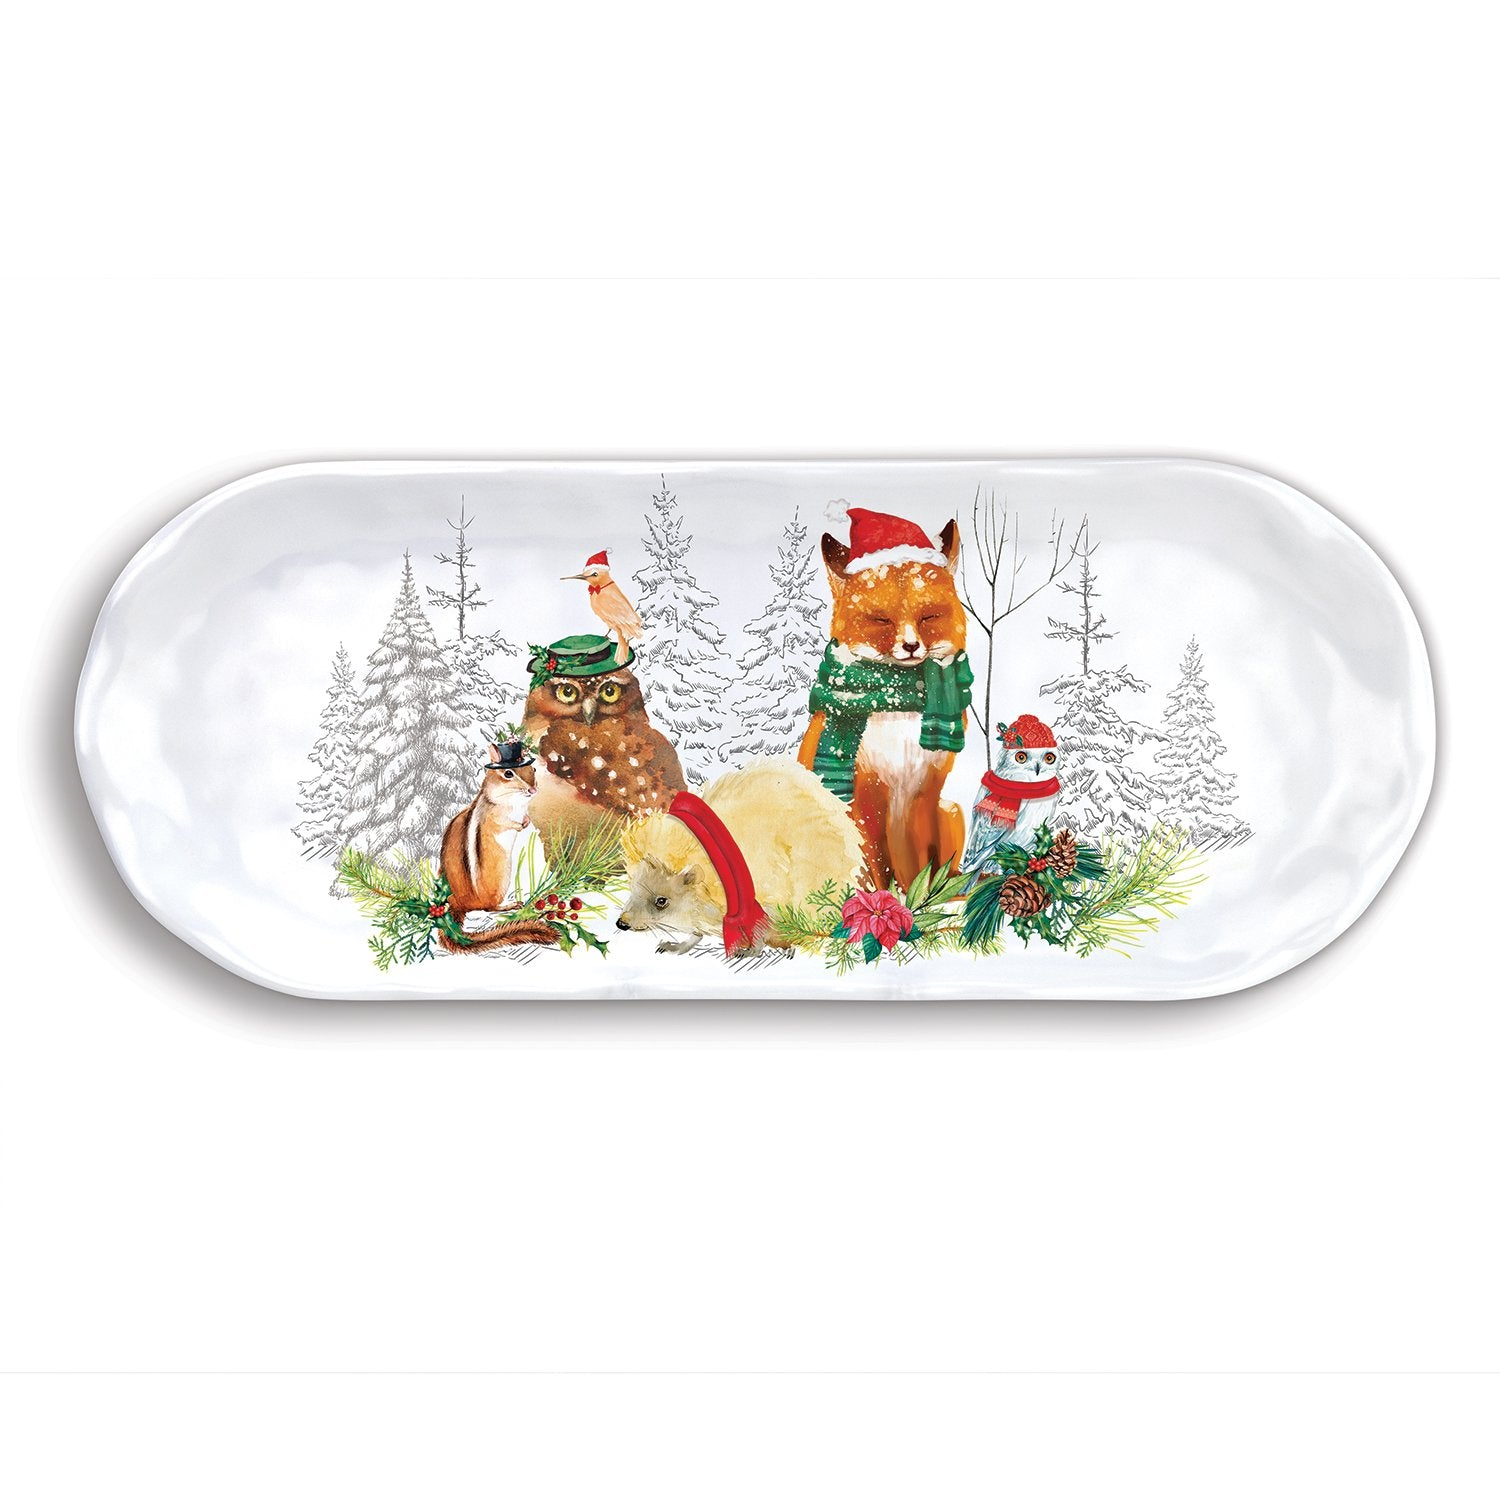 Christmas Party Melamine Serveware Accent Tray